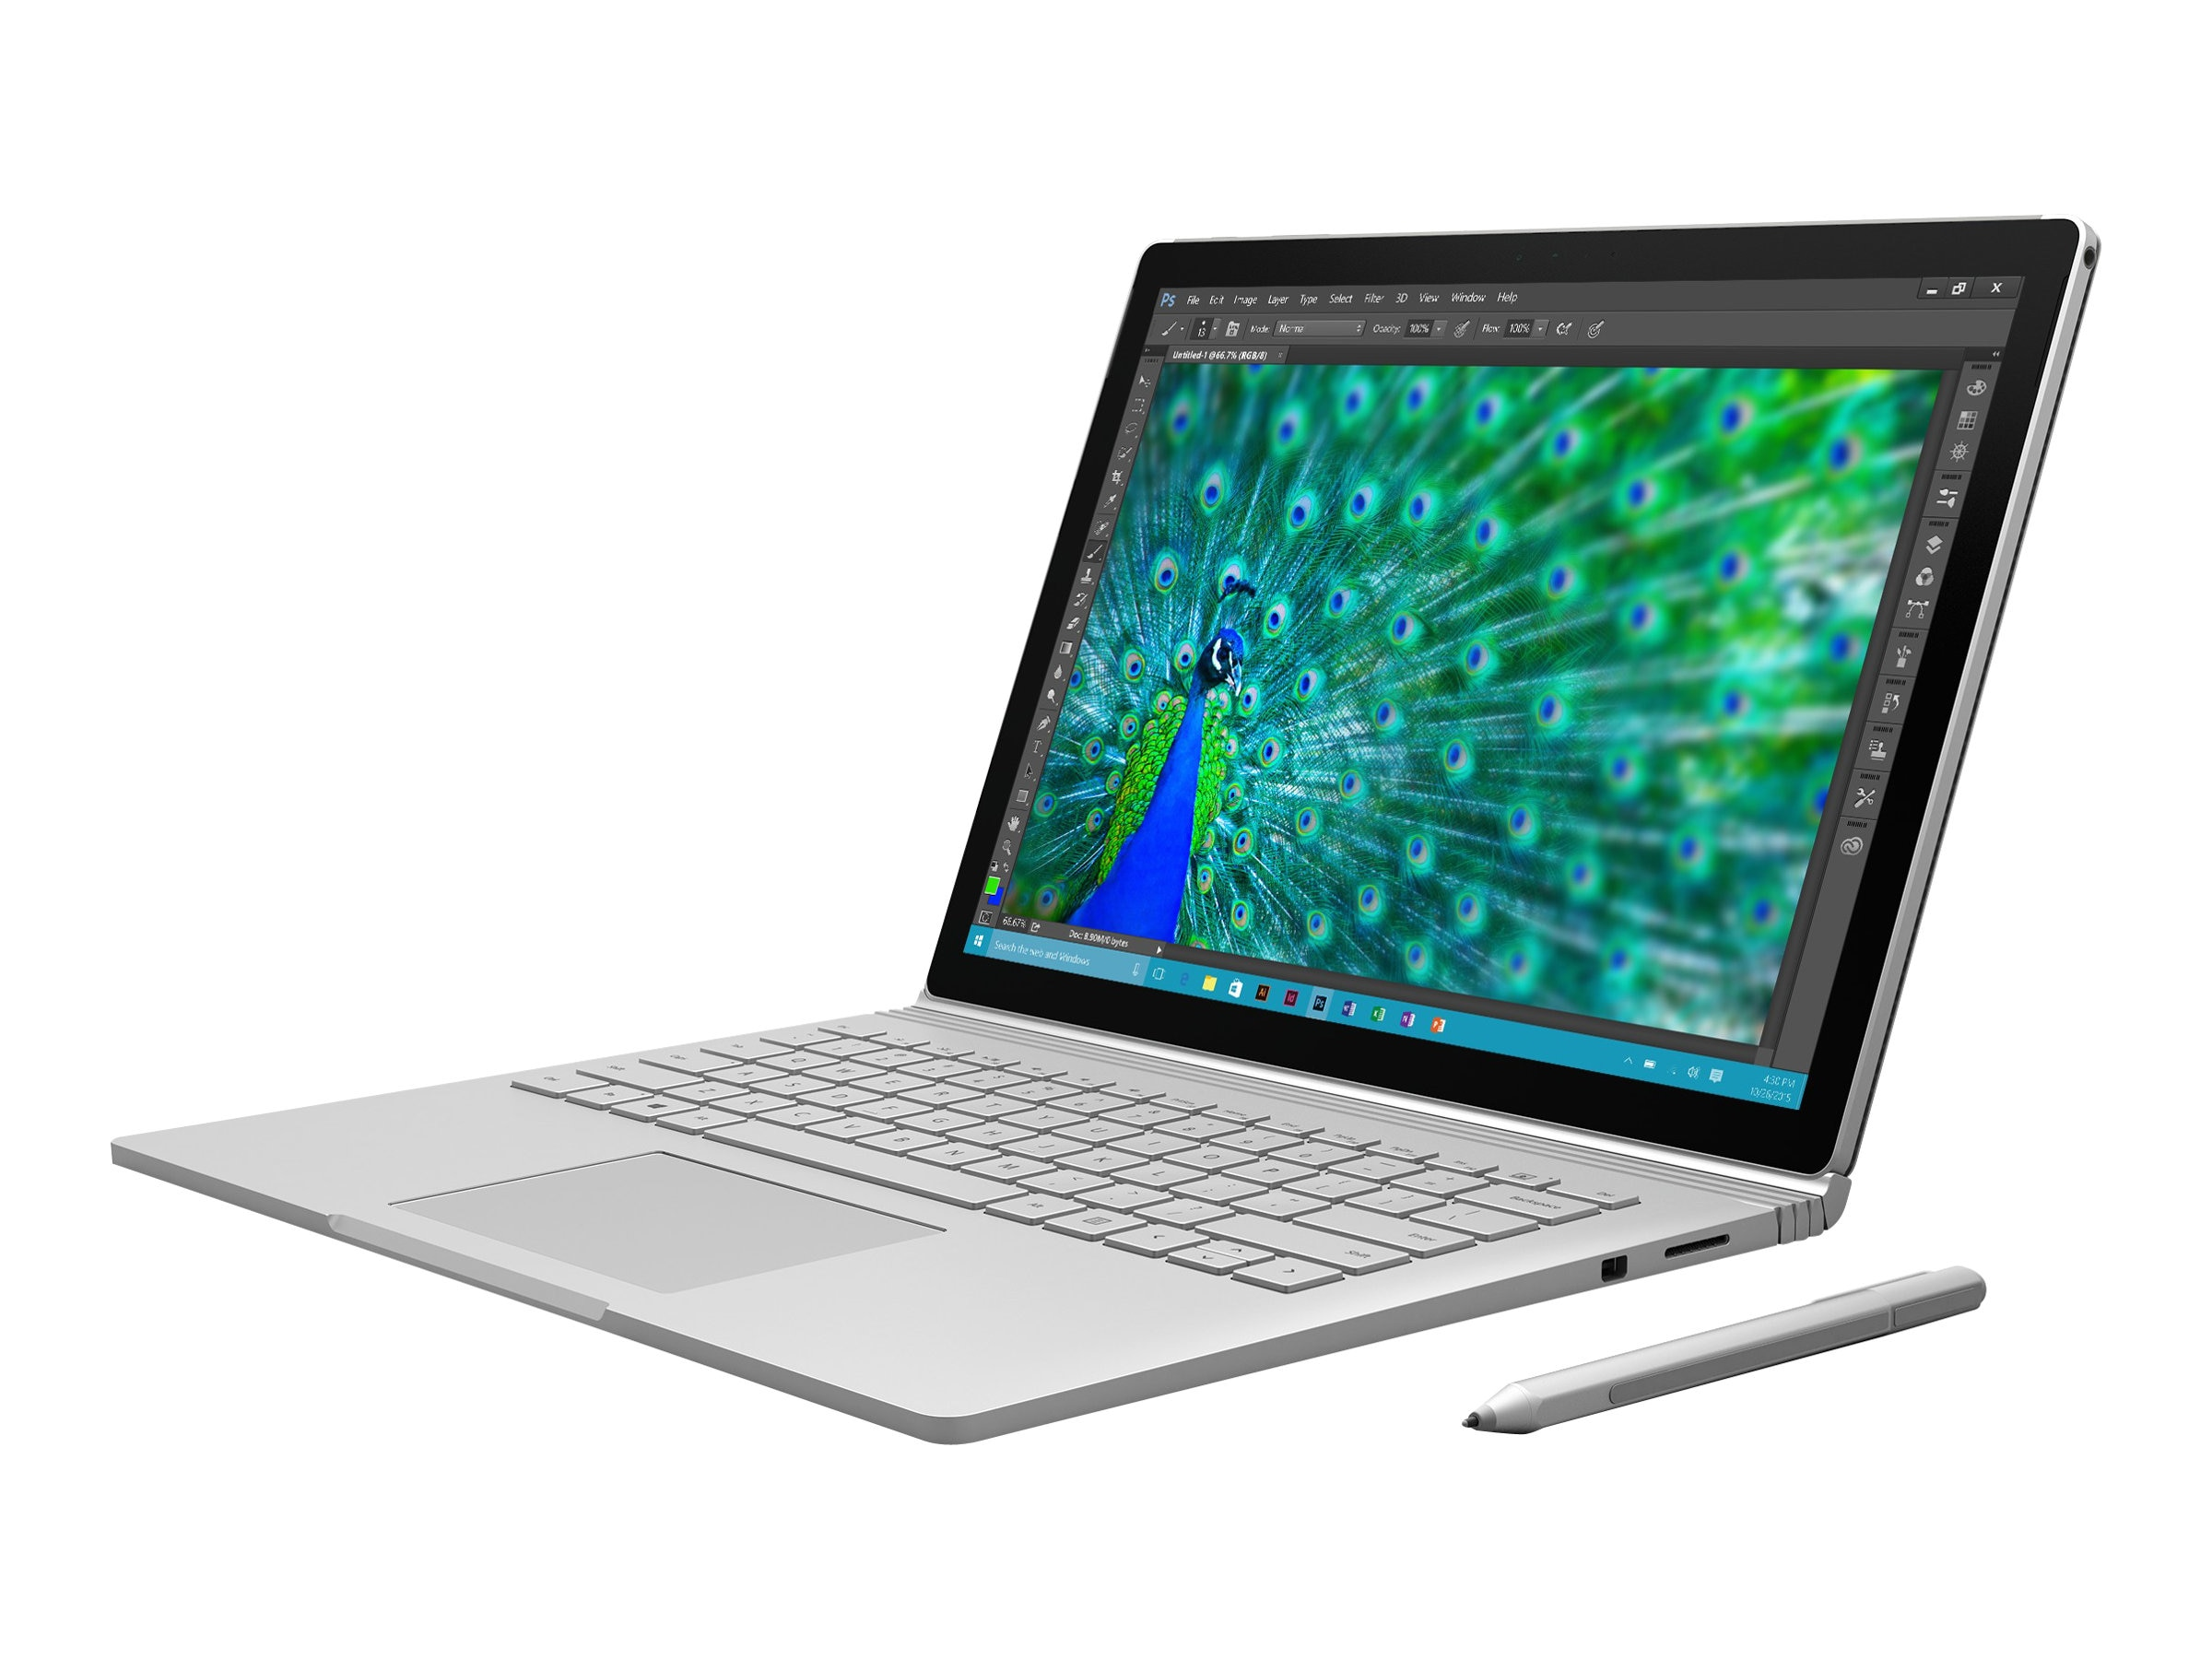 Microsoft Surface Book Core i5 dGPU 8GB 256GB w 3-Yr Complete for Business with ADP, 6E3-00001